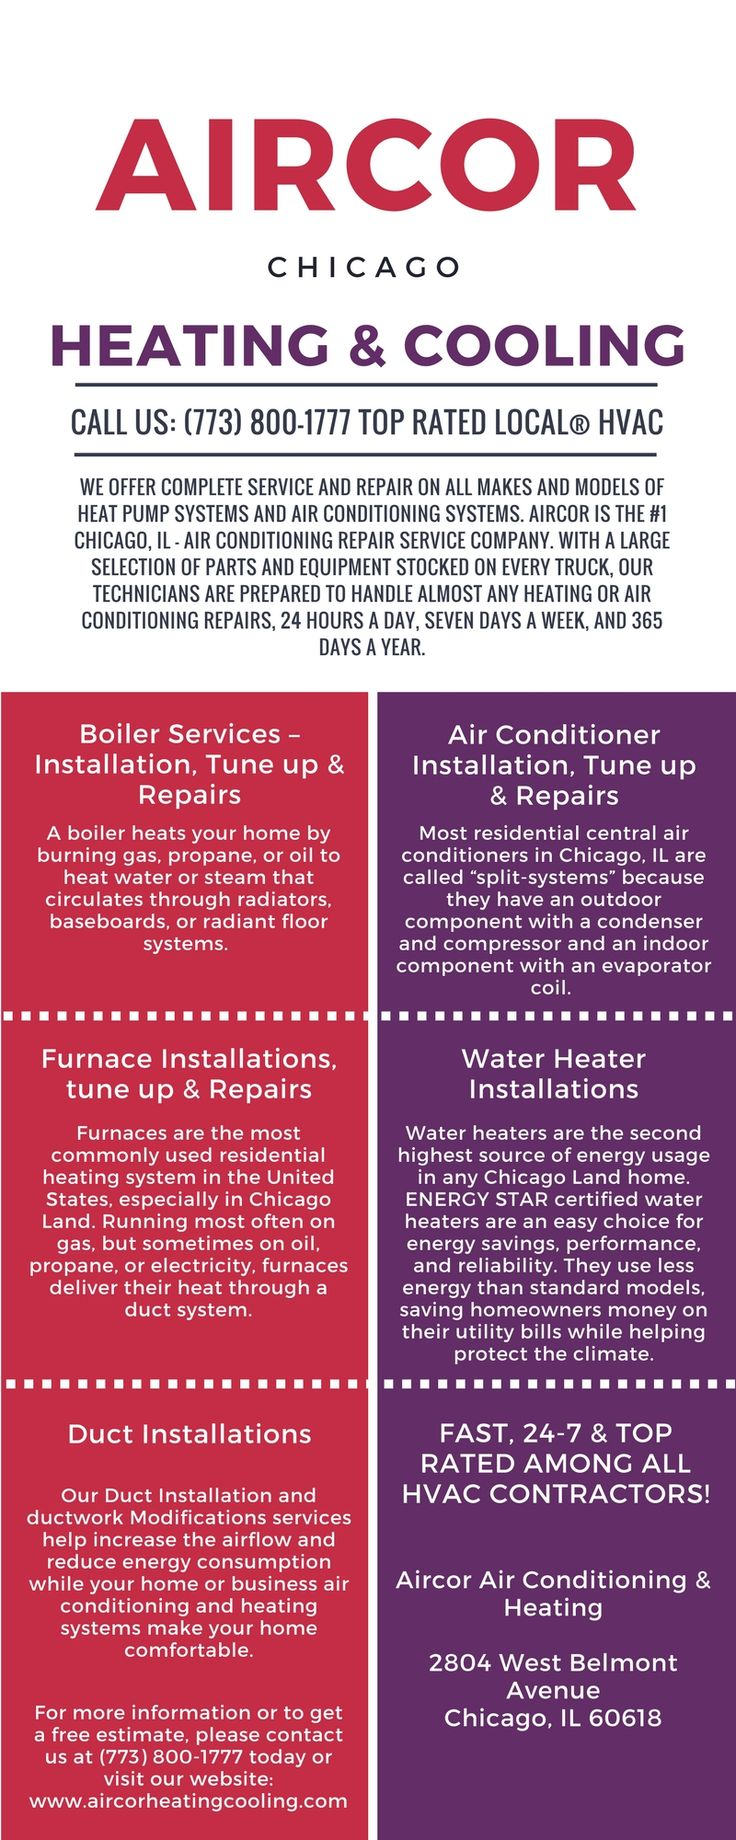 Four seasons heating and air conditioning chicago - Aircor Air Conditioning And Heating Wants You To Enjoy The Comfort And Peace Of Mind Of Breathing Clean Air All The Time Our Mission Is To Create Long